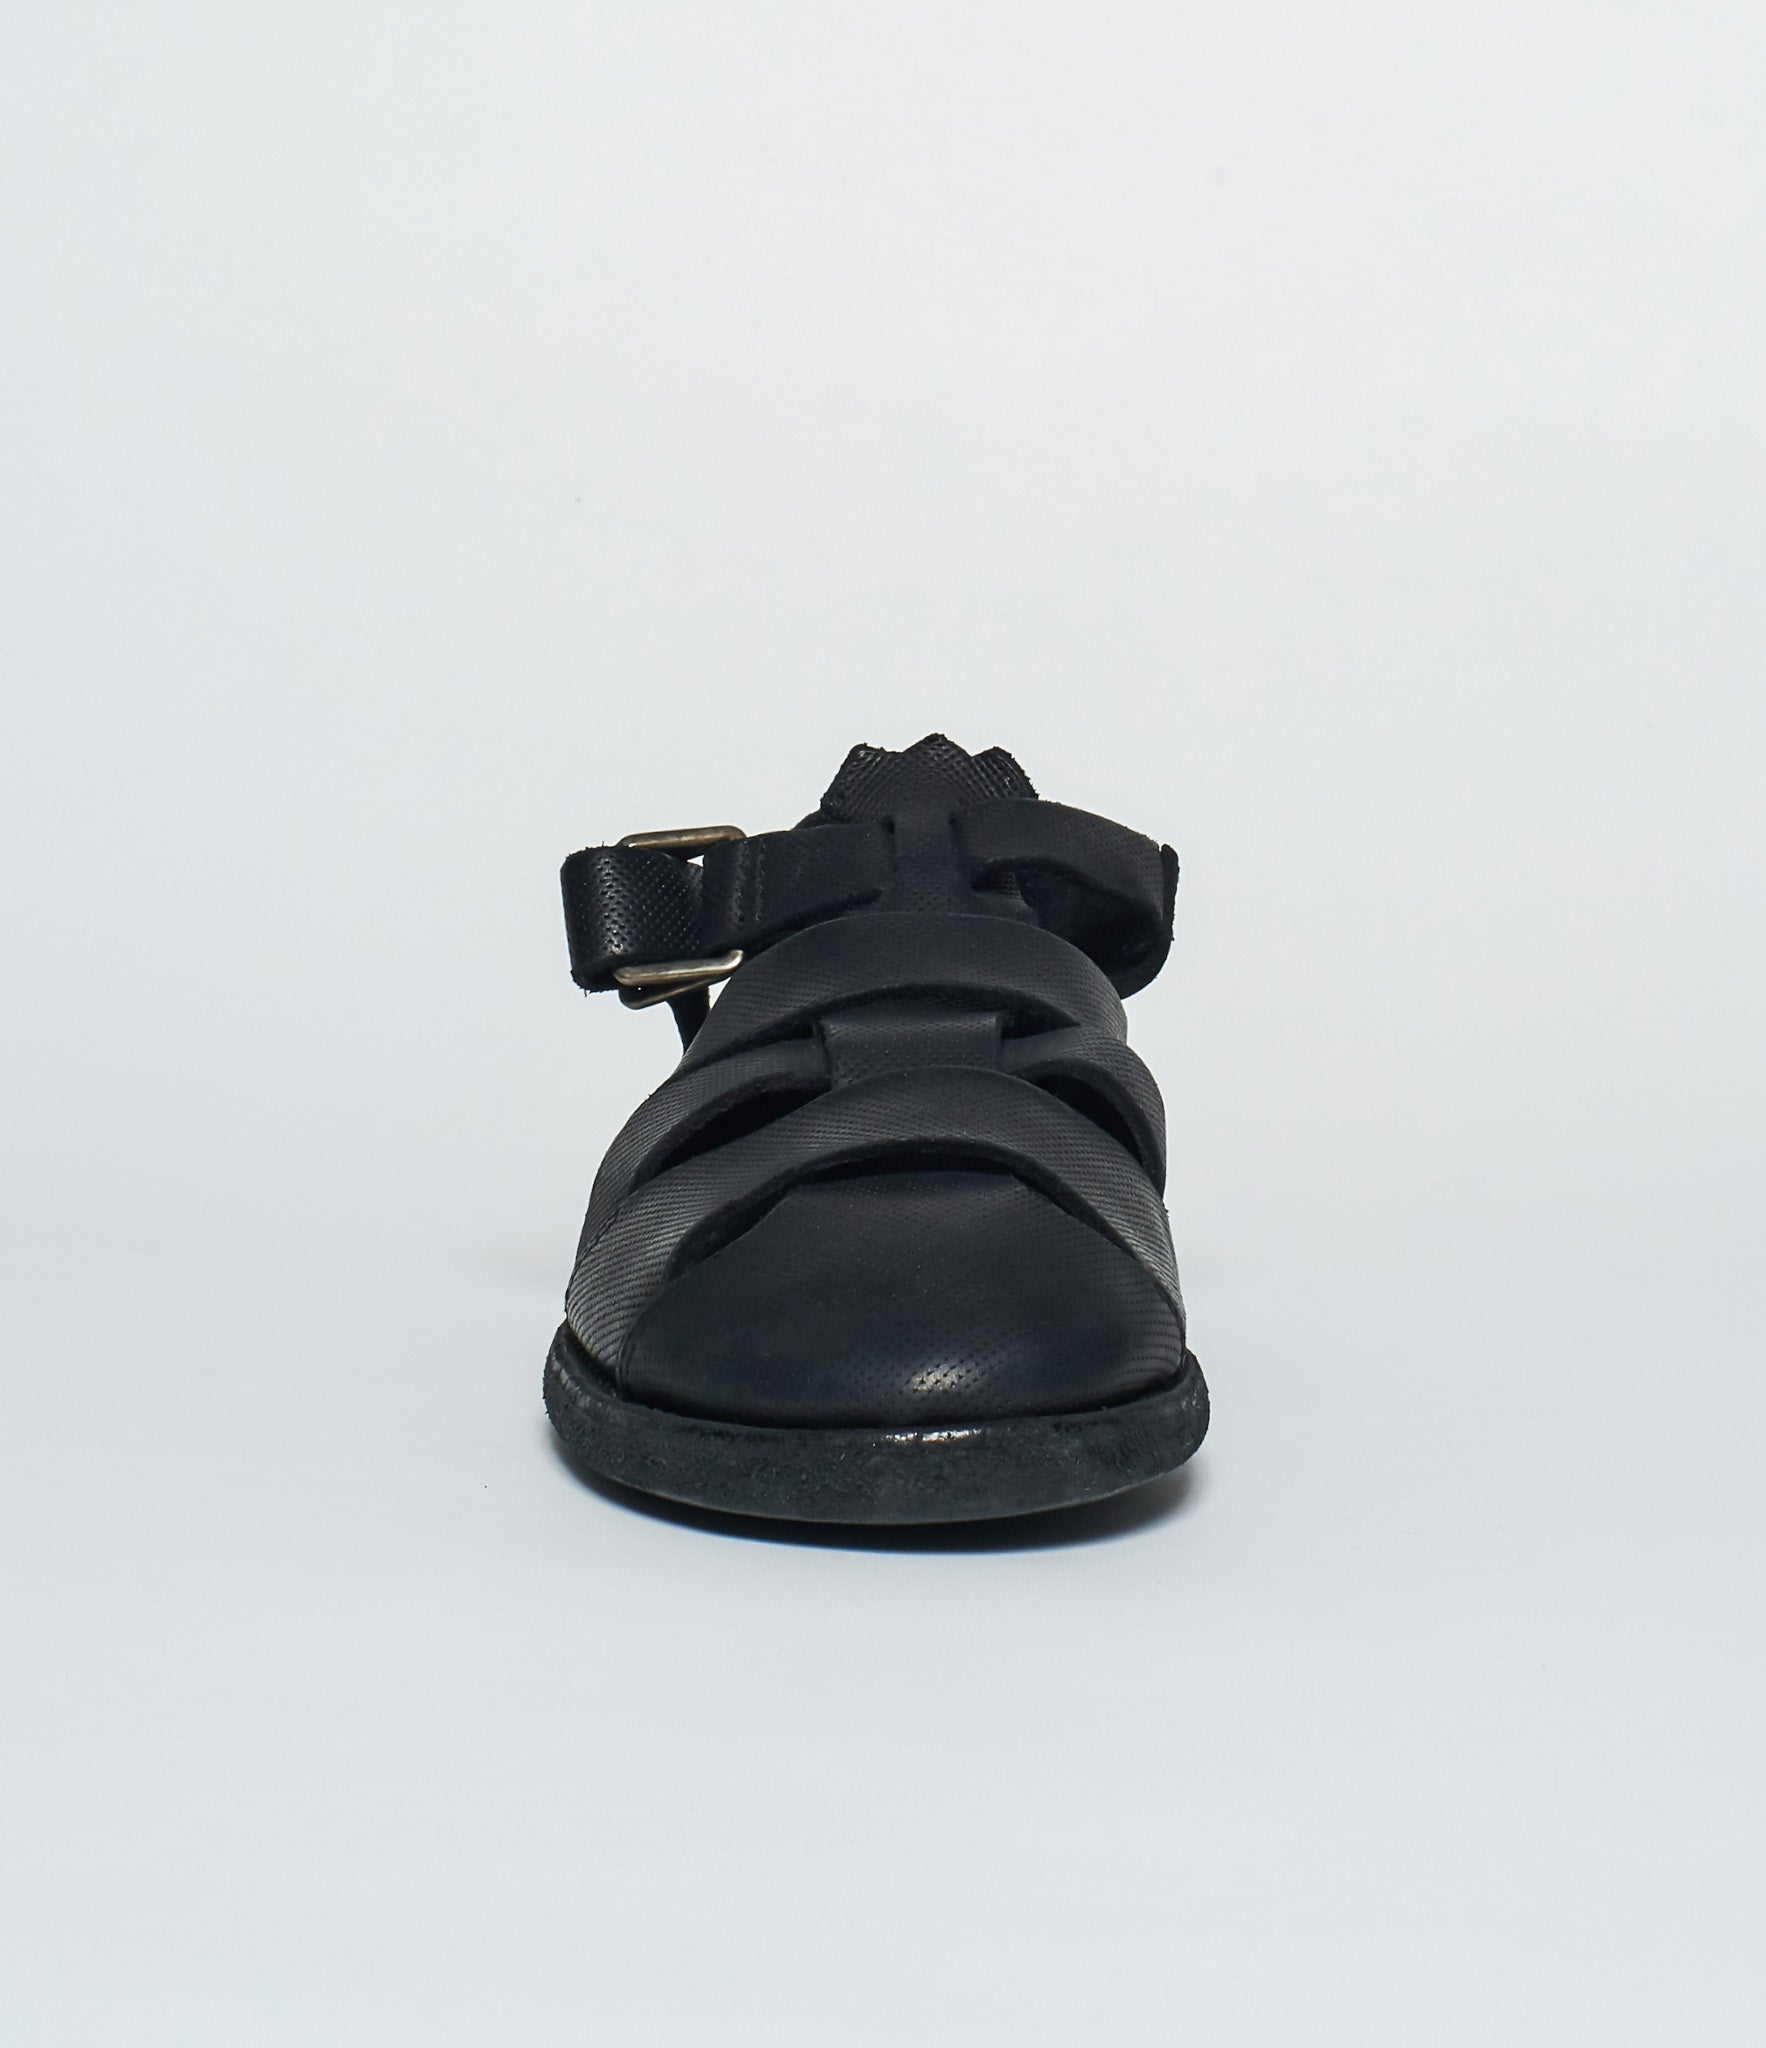 Guidi S02 Buckled Perforated Calf Full Grain Fisherman Sandals